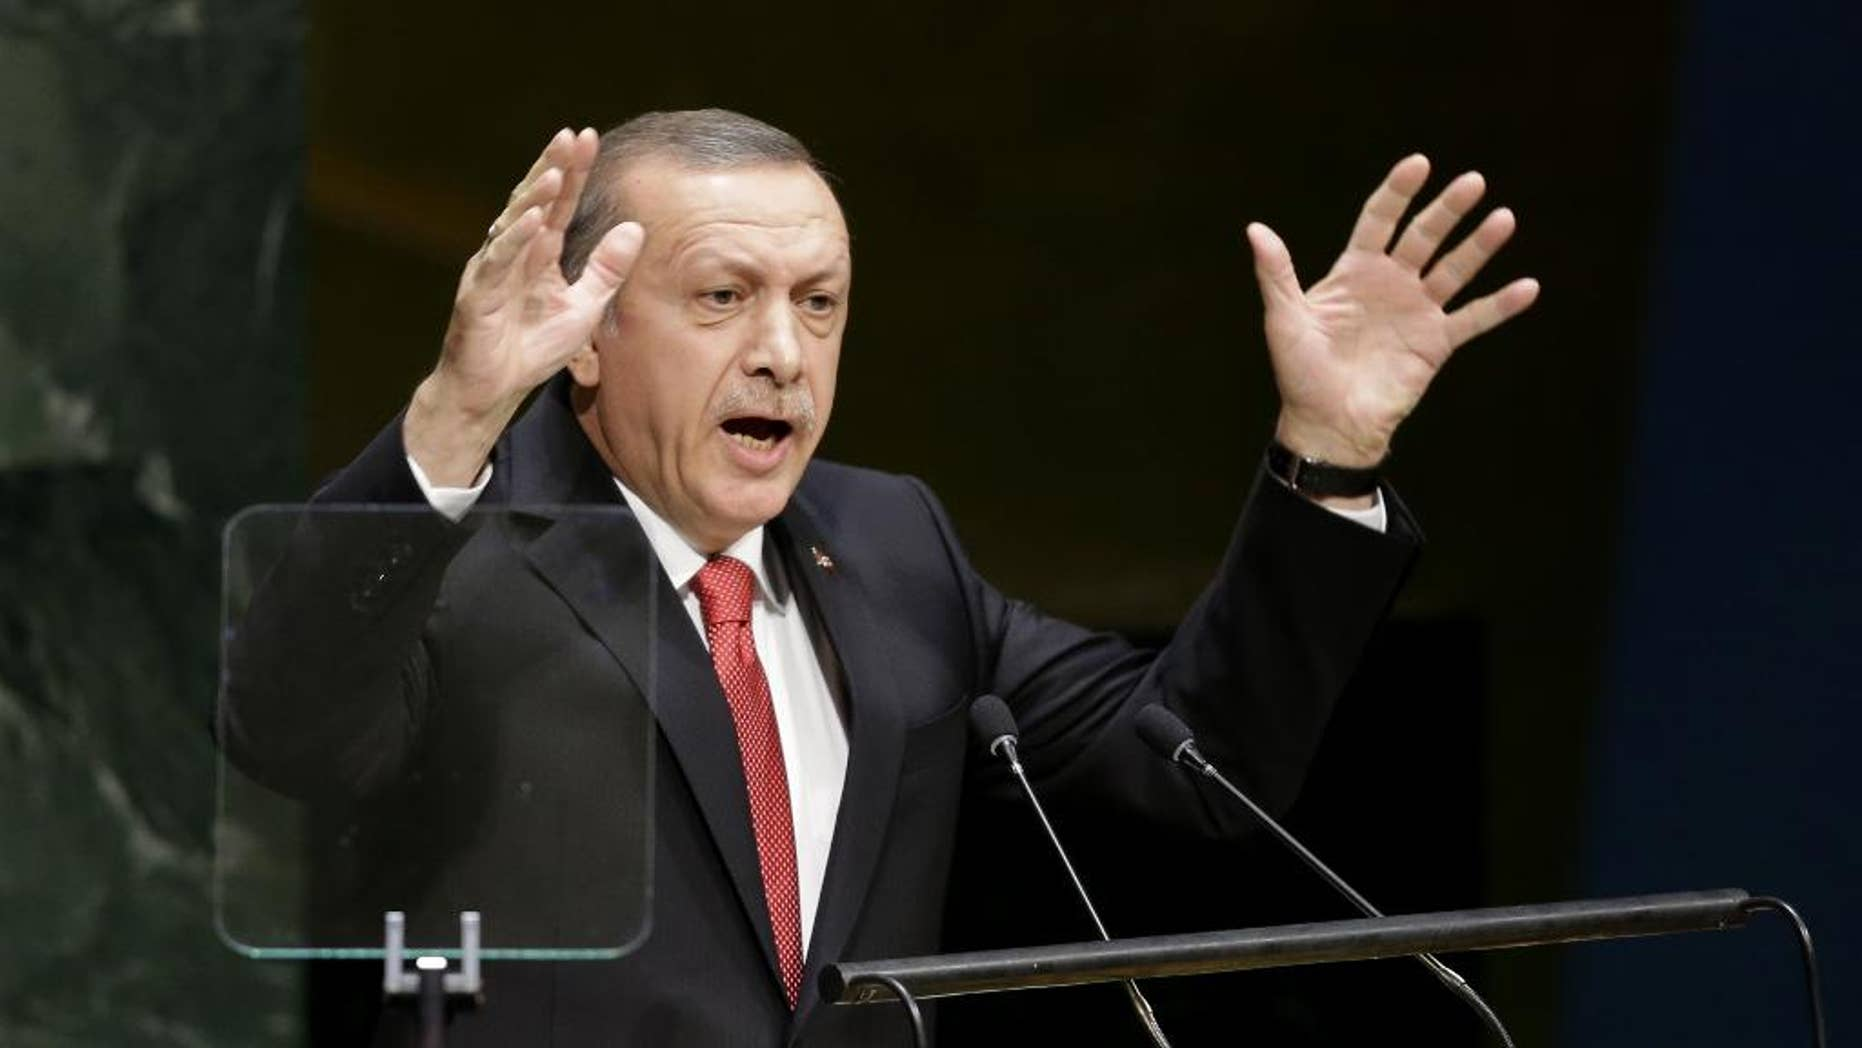 "In this Sept. 24, 2014, photo, Turkish President Recep Tayyip Erdogan speaks during the 69th session of the United Nations General Assembly at U.N. headquarters. Moving from reluctance to refusal and finally to acceptance, Turkey is joining its NATO allies and fellow Sunni Muslim nations in a coalition to destroy the Islamic State militant group. But the U.S. is still waiting for details of any new, specific, aid and is warily watching to make sure Ankara keeps its commitments. Erdogan also told reporters on Tuesday, ""Of course, we will do our part.""  (AP Photo/Seth Wenig)"